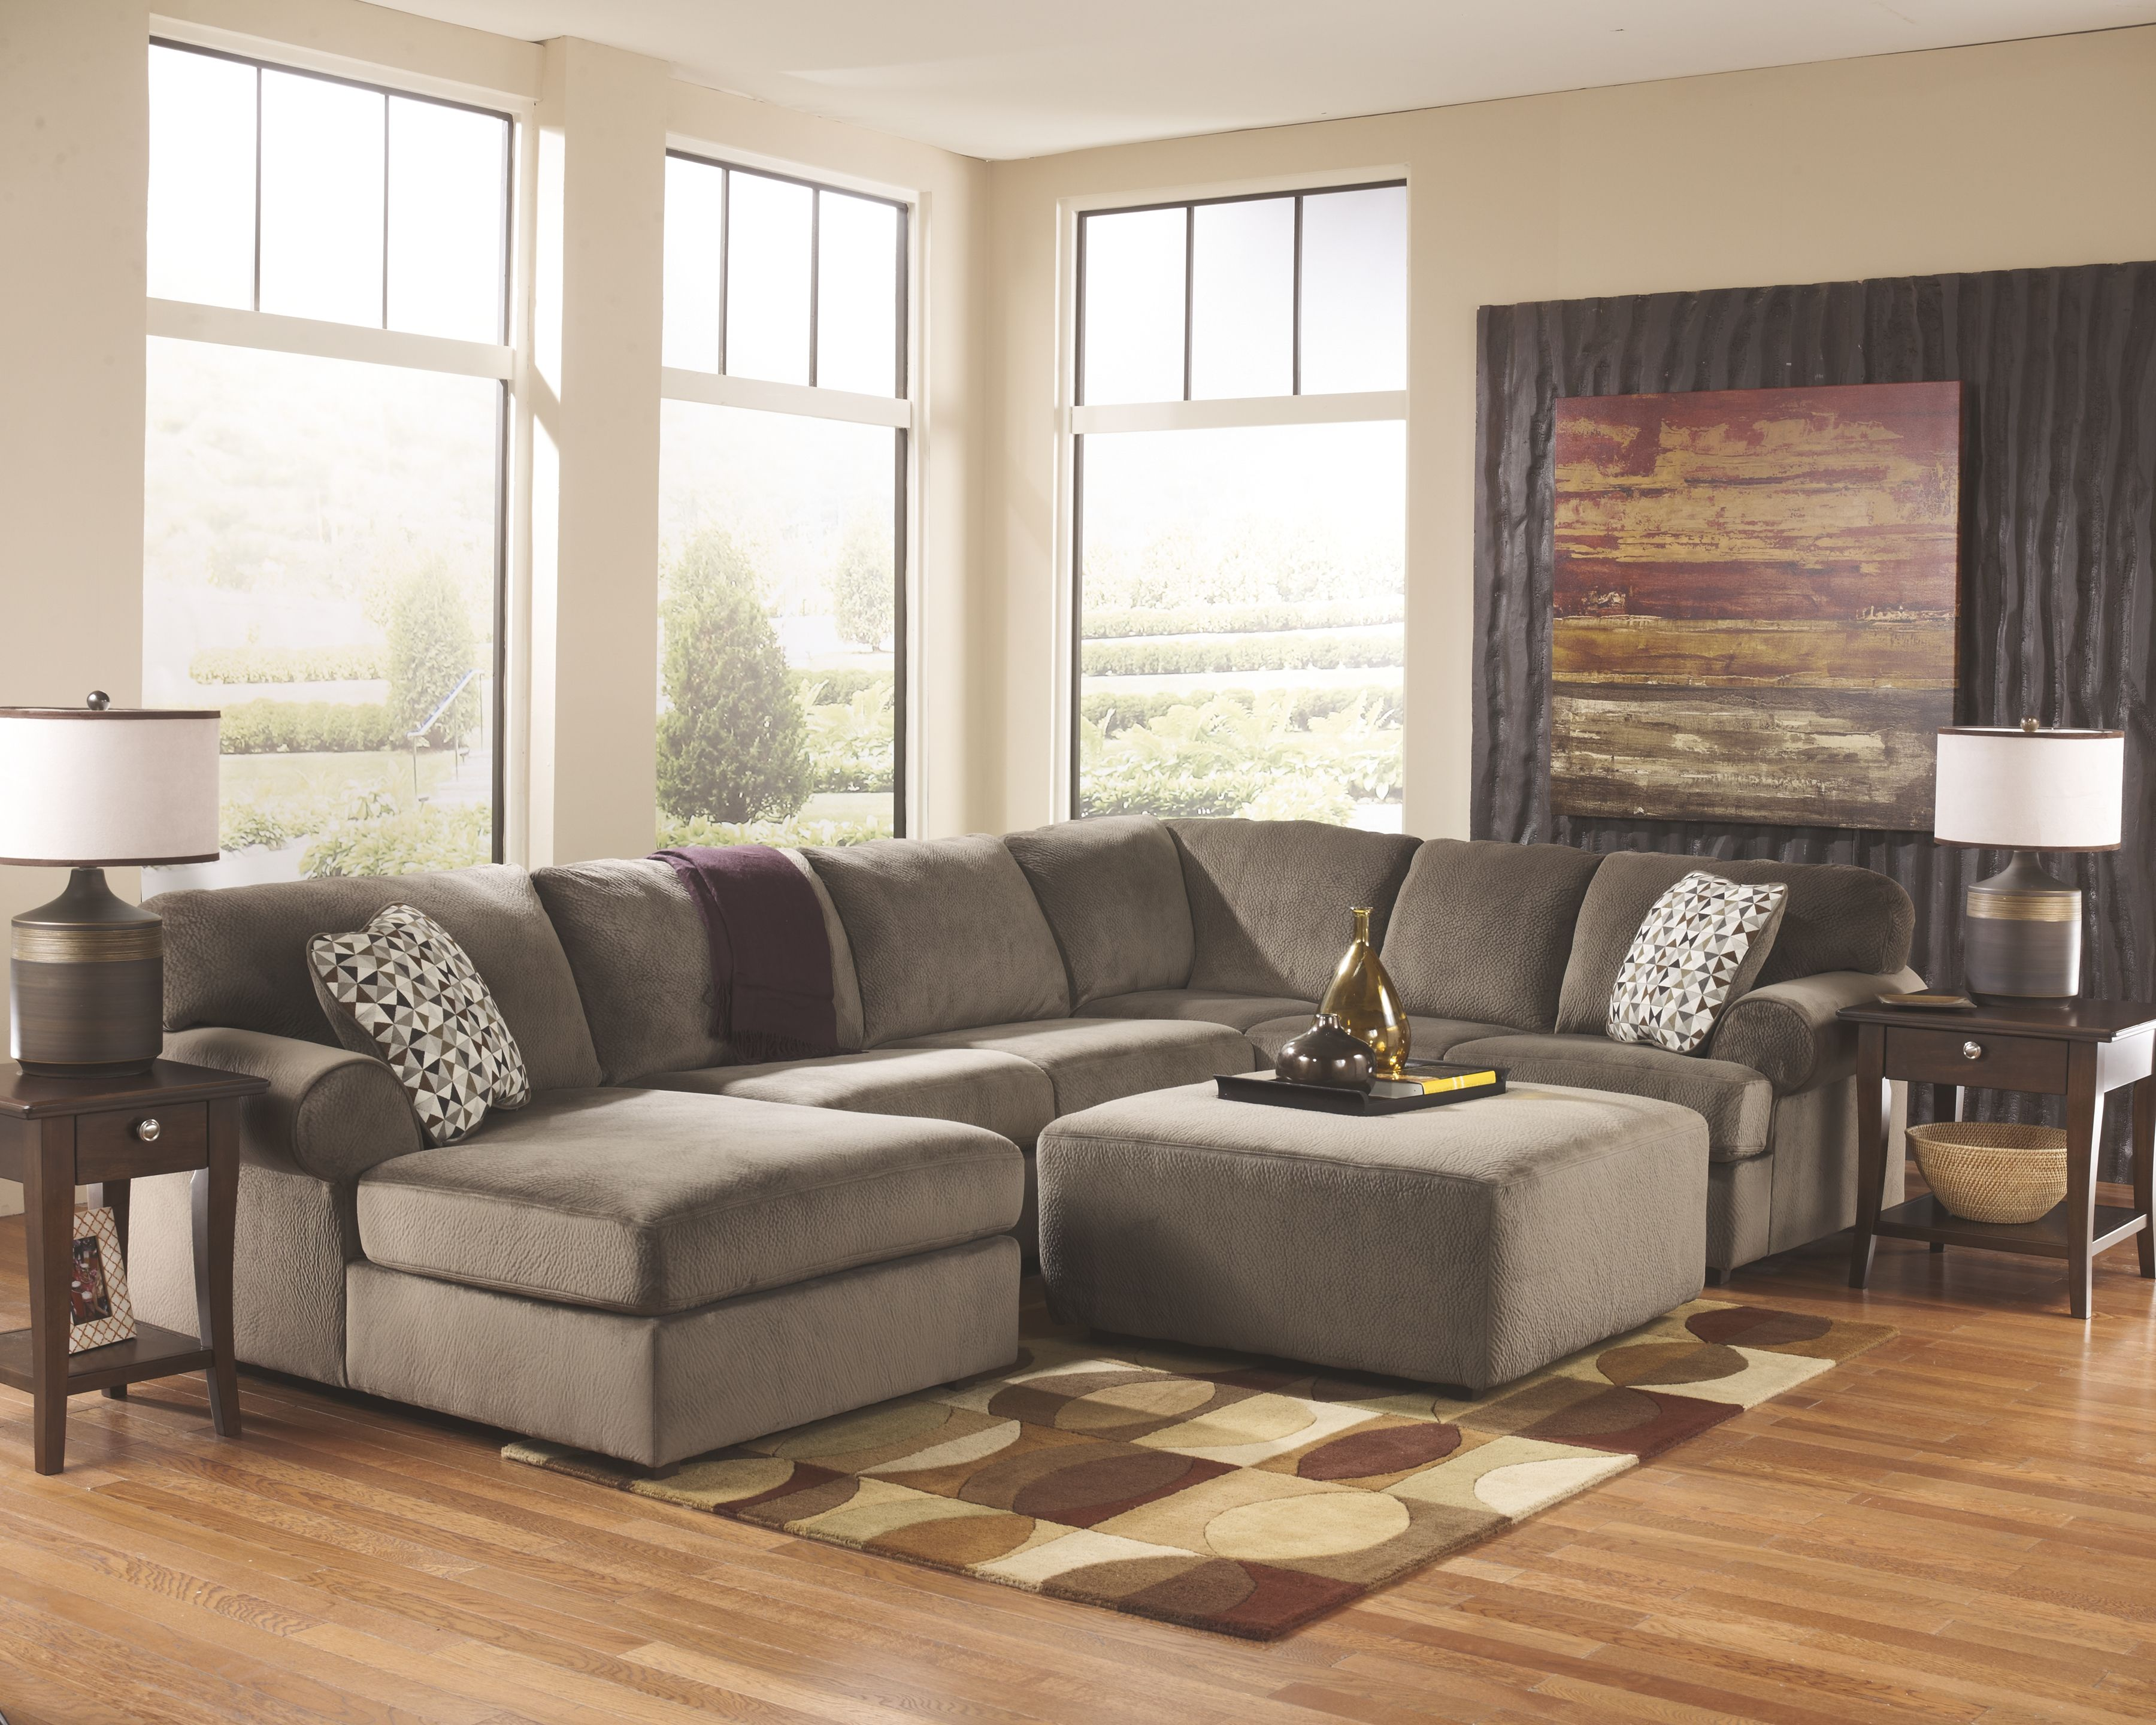 Jessa Place 3Piece Sectional with Ottoman Cheap living